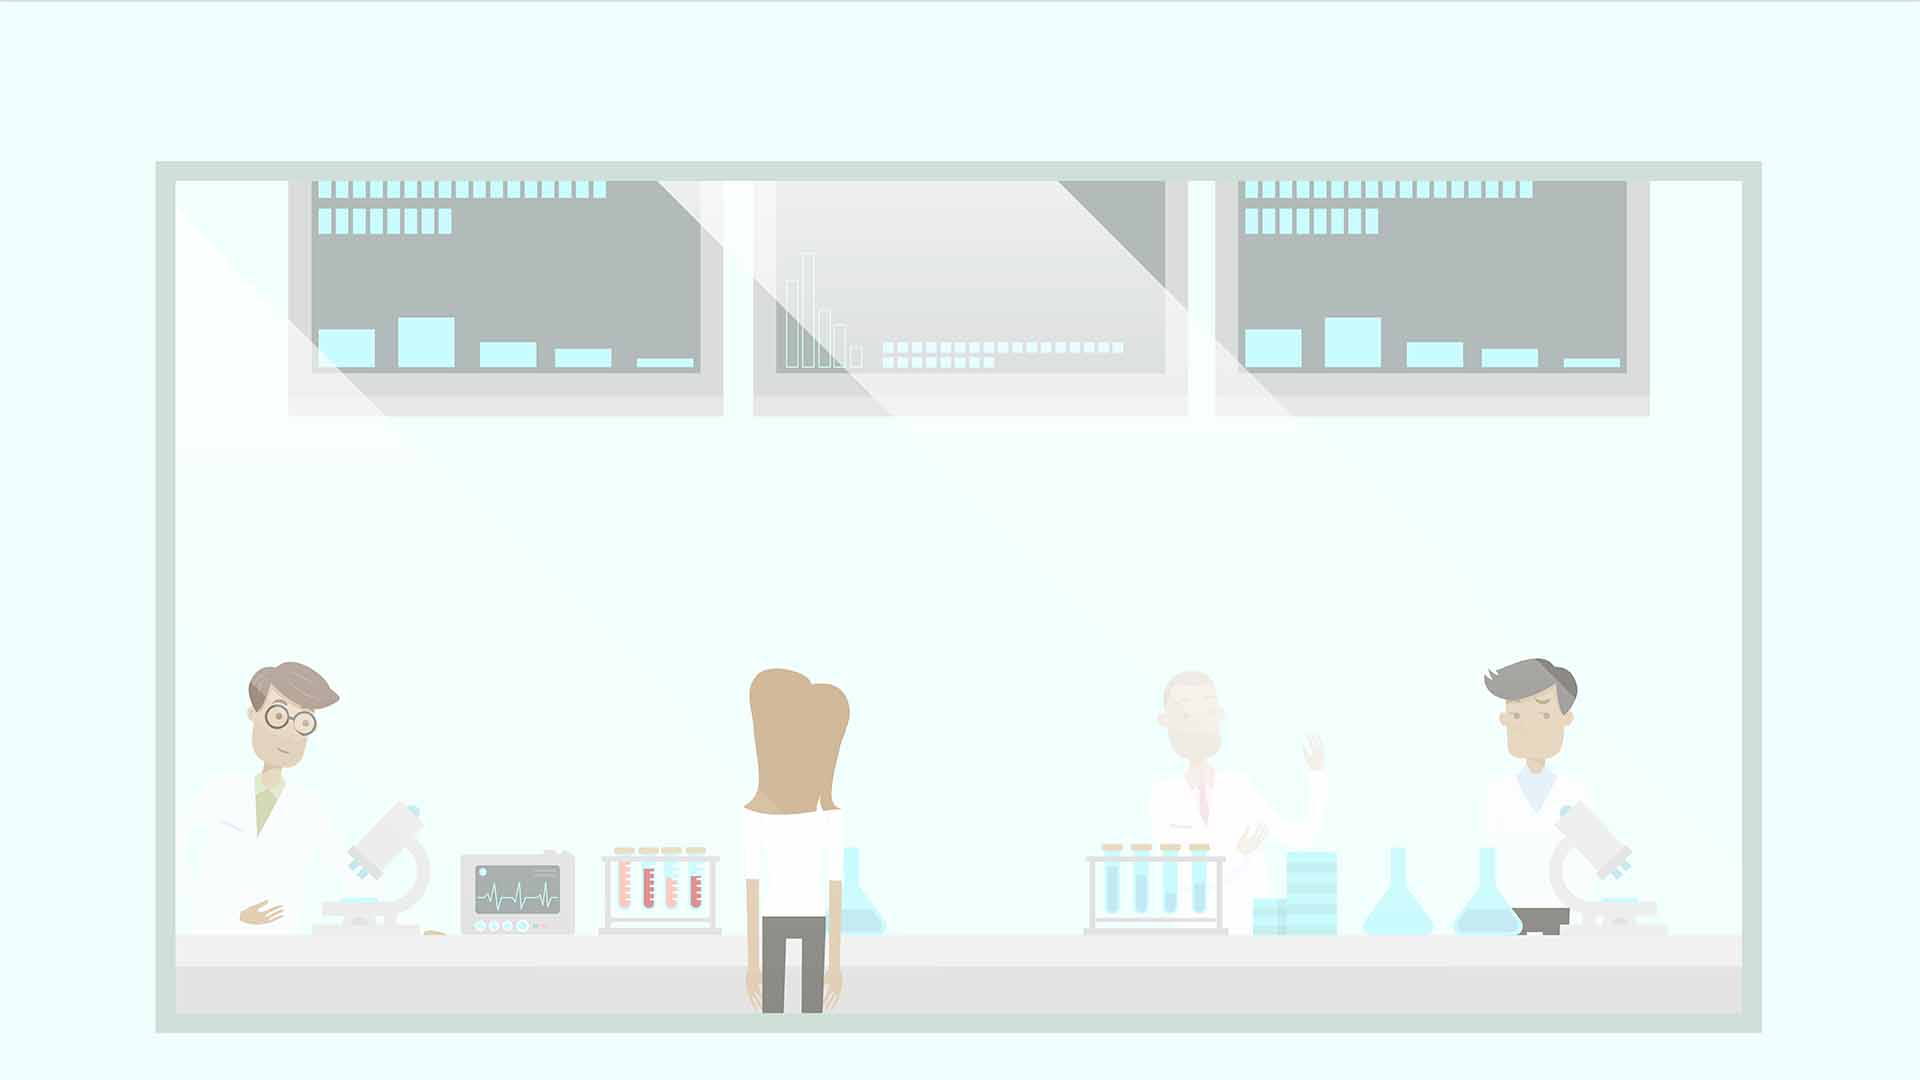 2D animated scientists in a lab